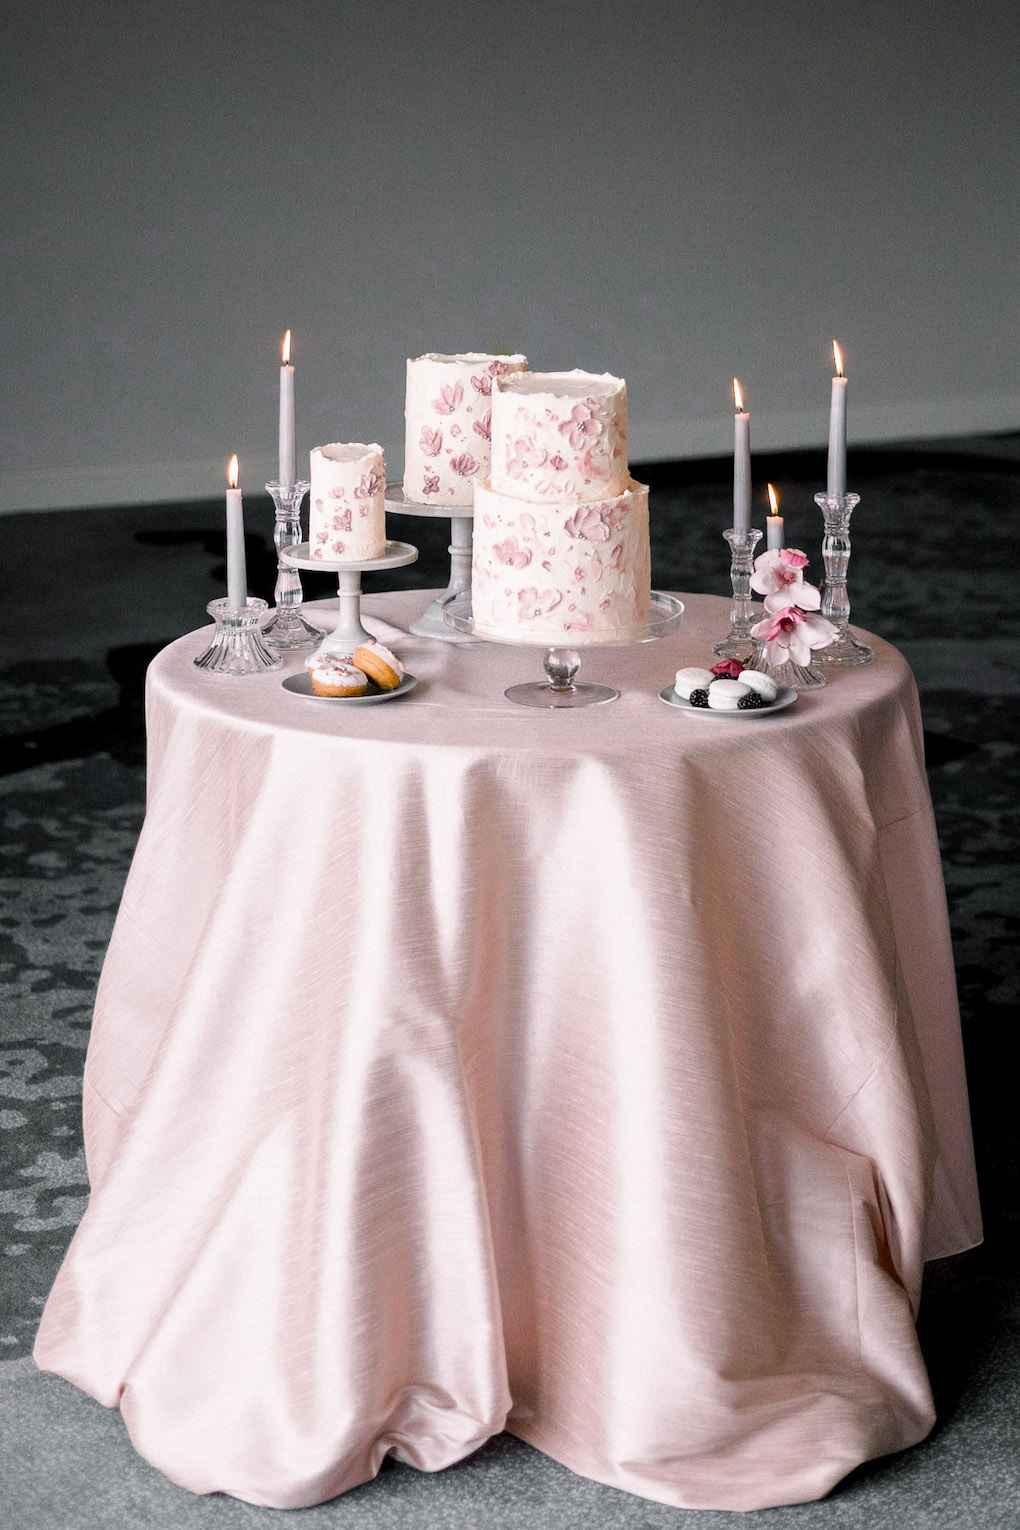 Multiple Wedding Cake Display: Soft and Subtle Palettes of Spring Blossoms | Editorial Shoot at The Renaissance Pittsburgh by Exhale Events. See more inspiration at exhale-events.com!